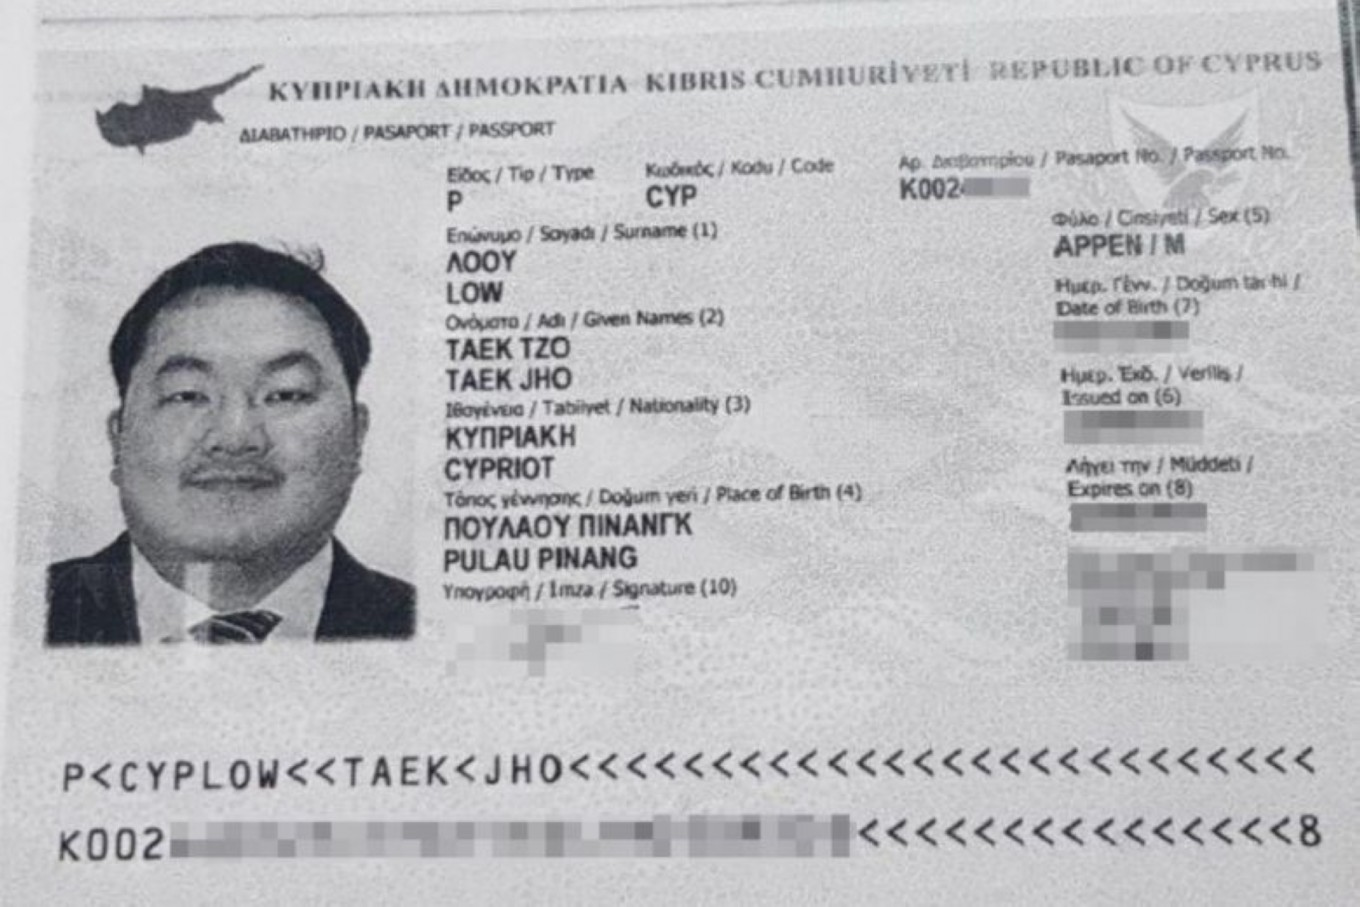 Singapore agency denies fugitive Jho Low is client